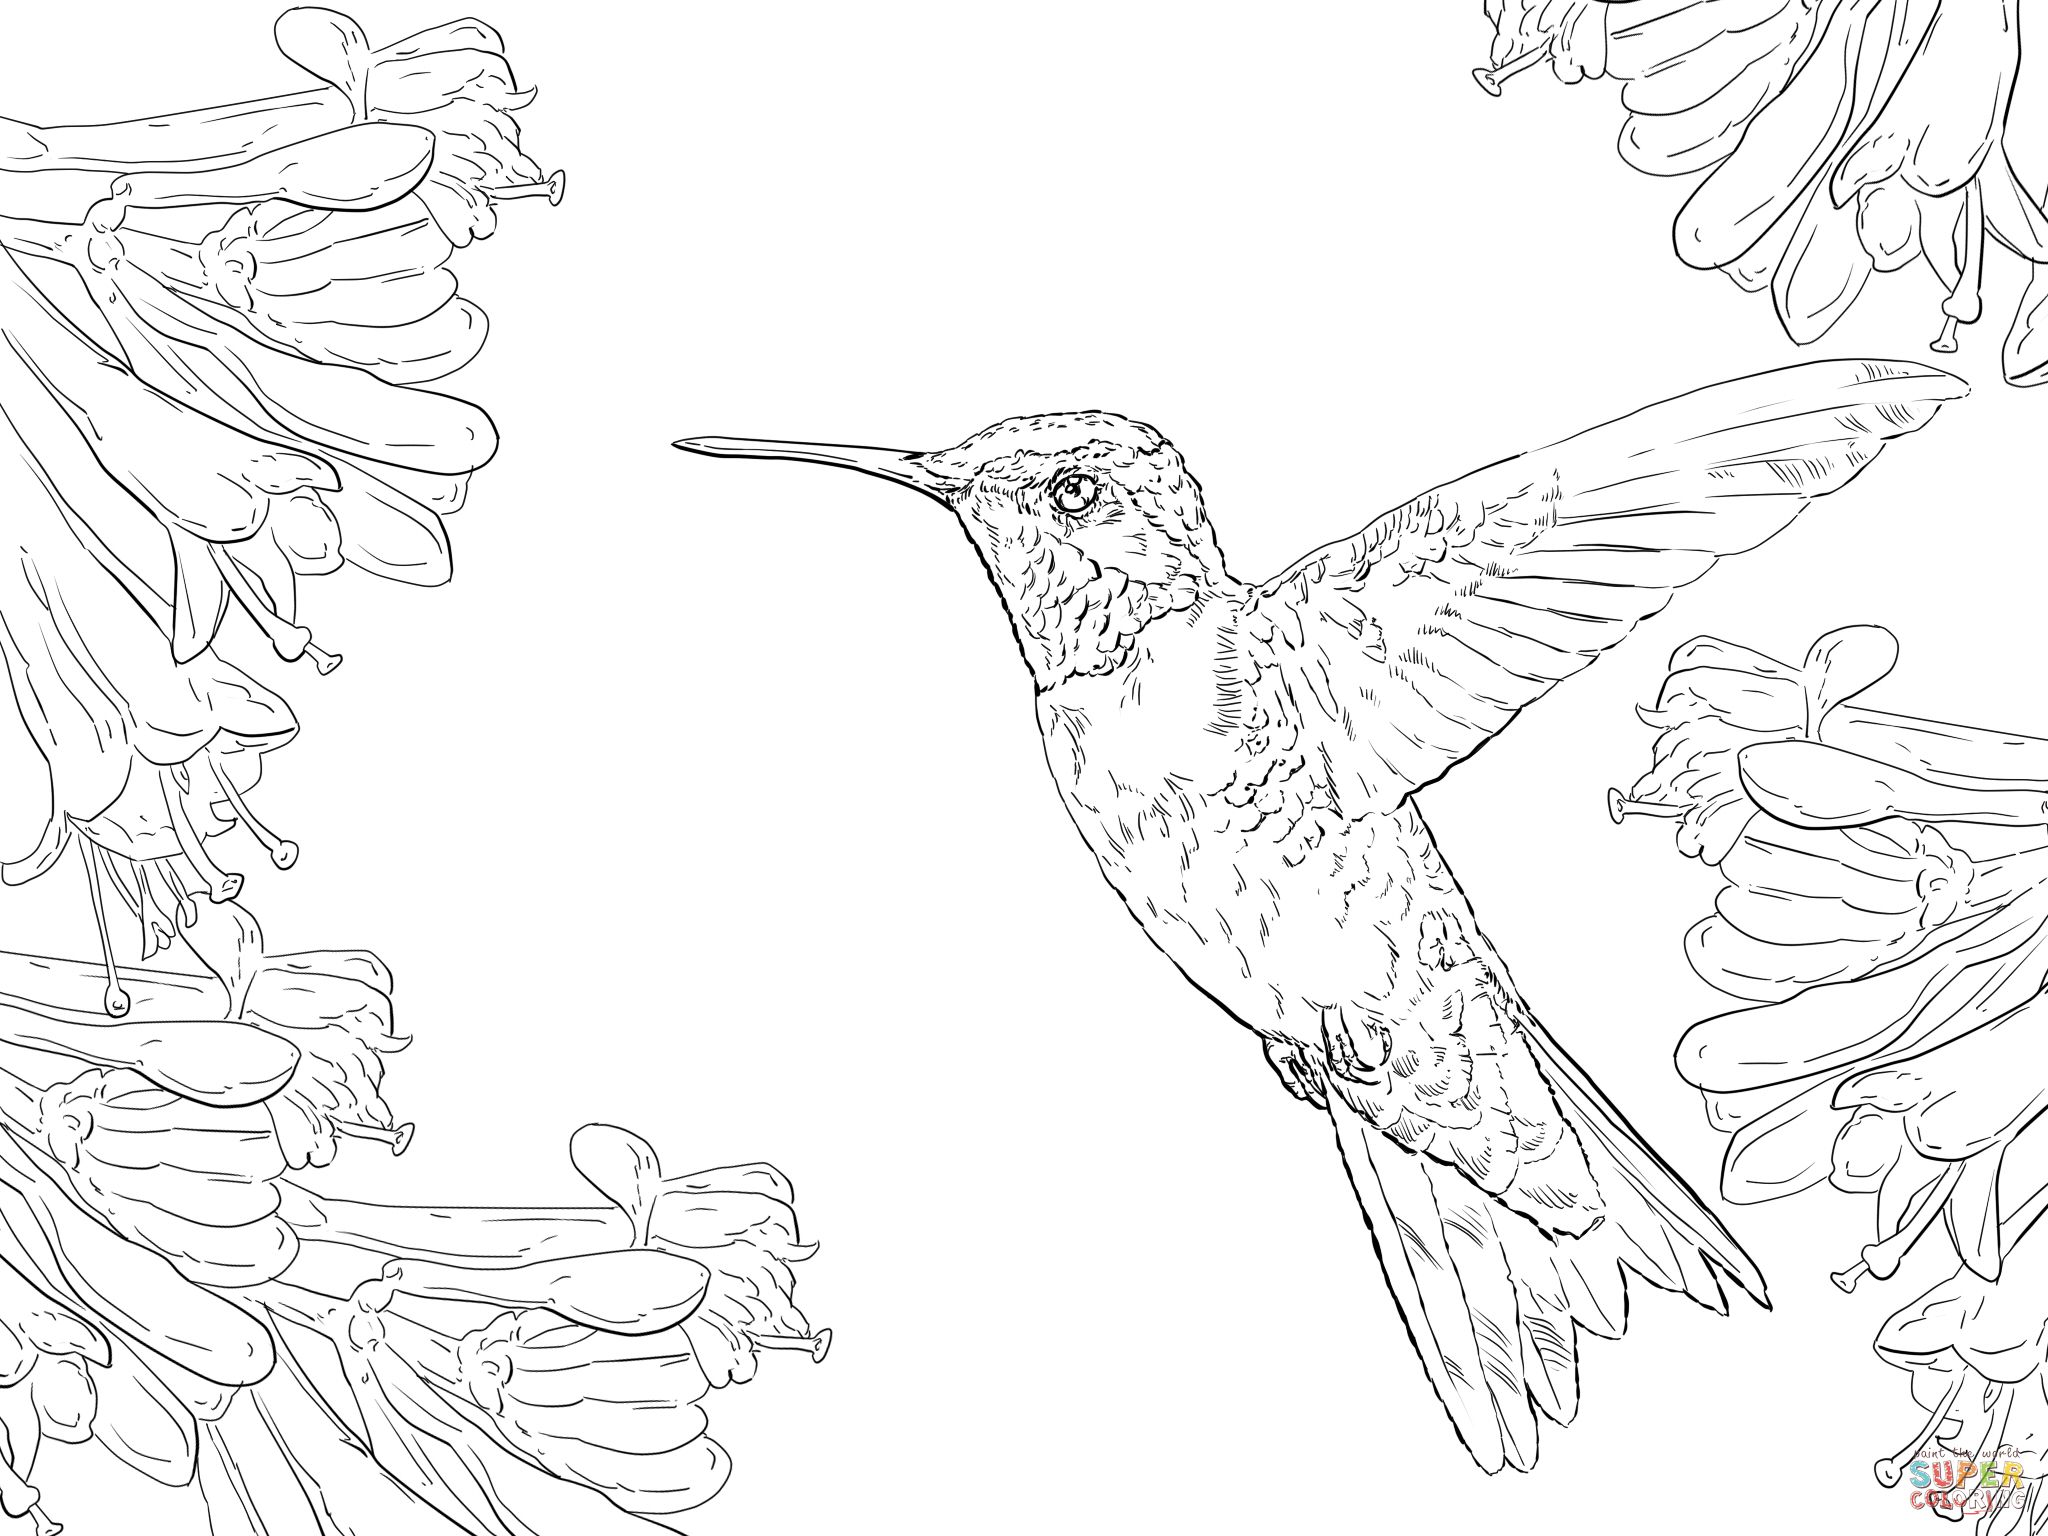 Realistic Ruby Throated Hummingbird Coloring Page Supercoloring Com Hummingbird Colors Bird Coloring Pages Free Printable Coloring Pages